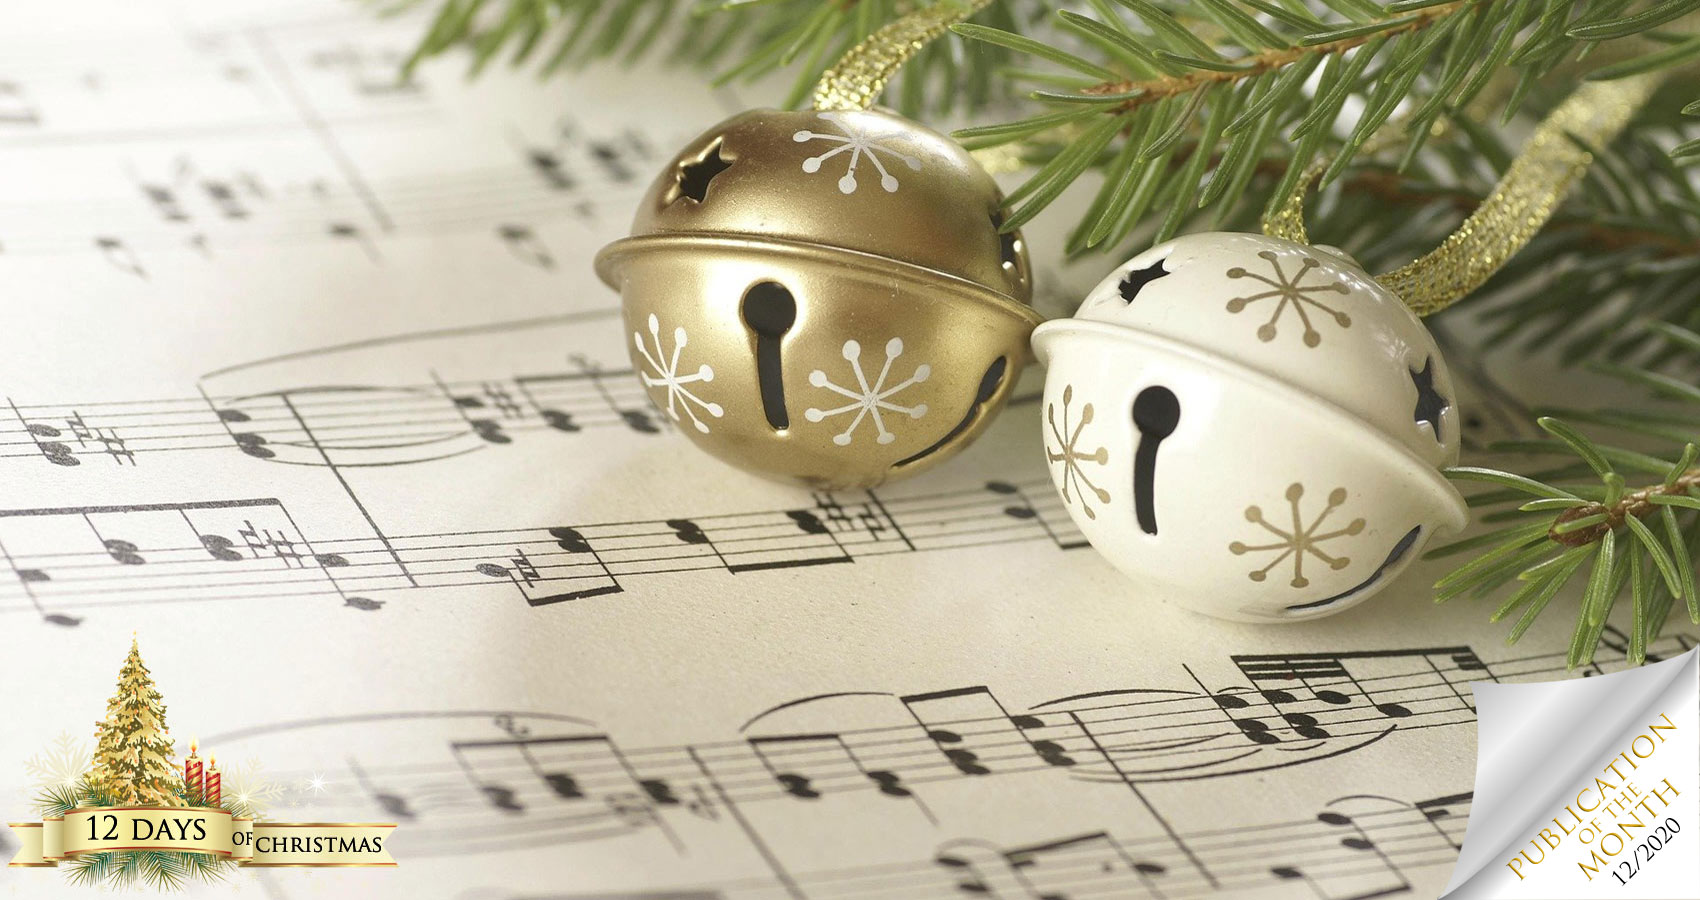 A Song For Christmas, a short story by Steve Carr at Spillwords.com